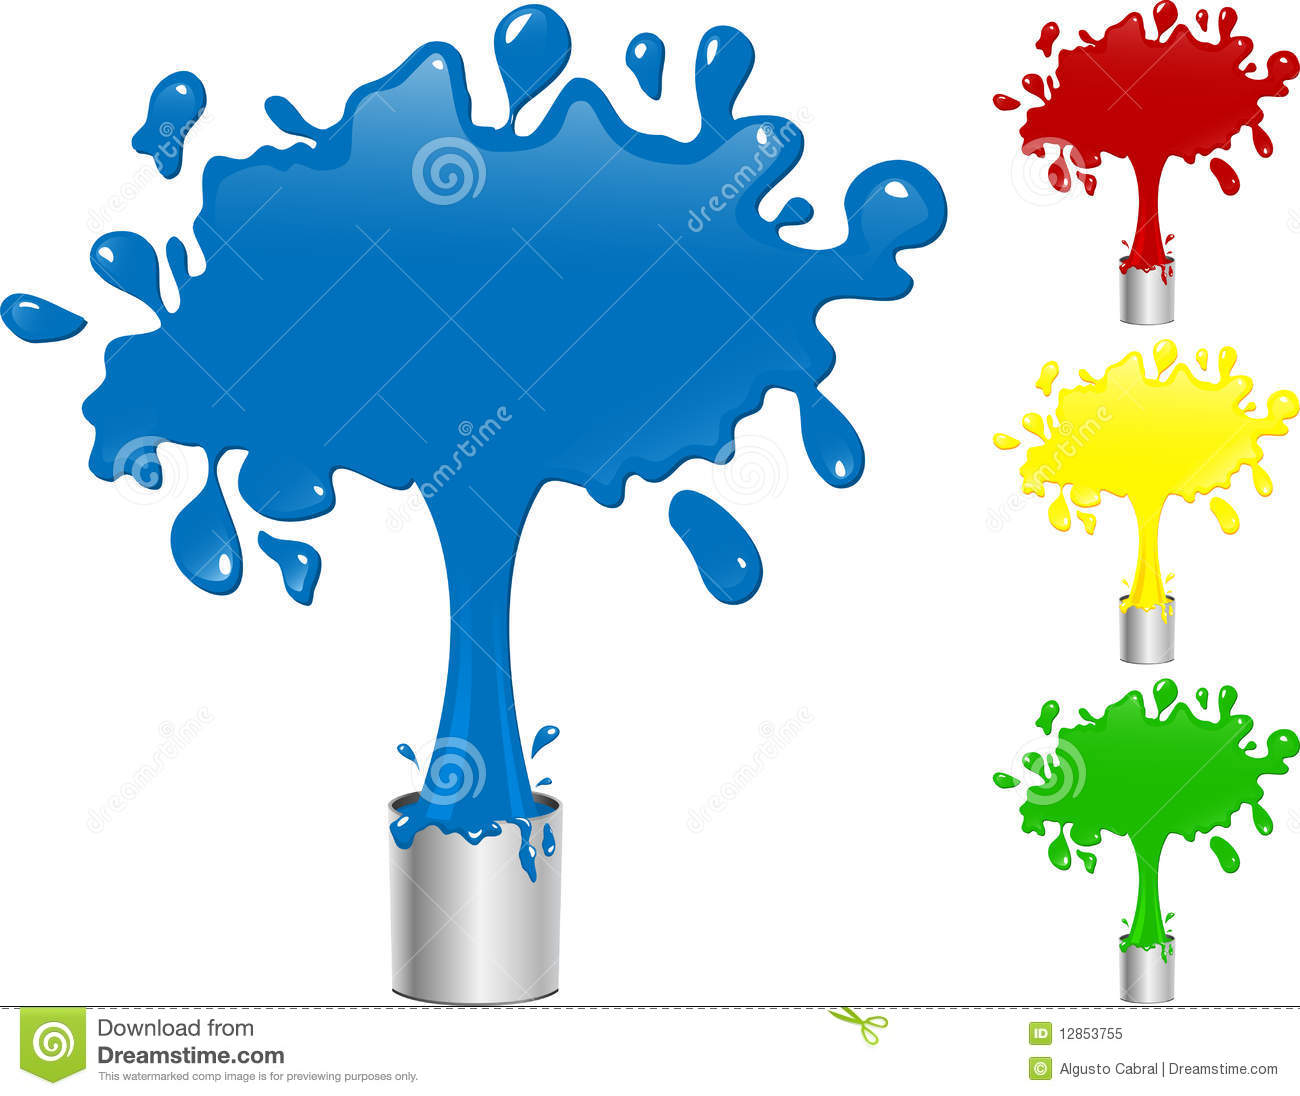 Blue, Red, Yellow and Green Paint